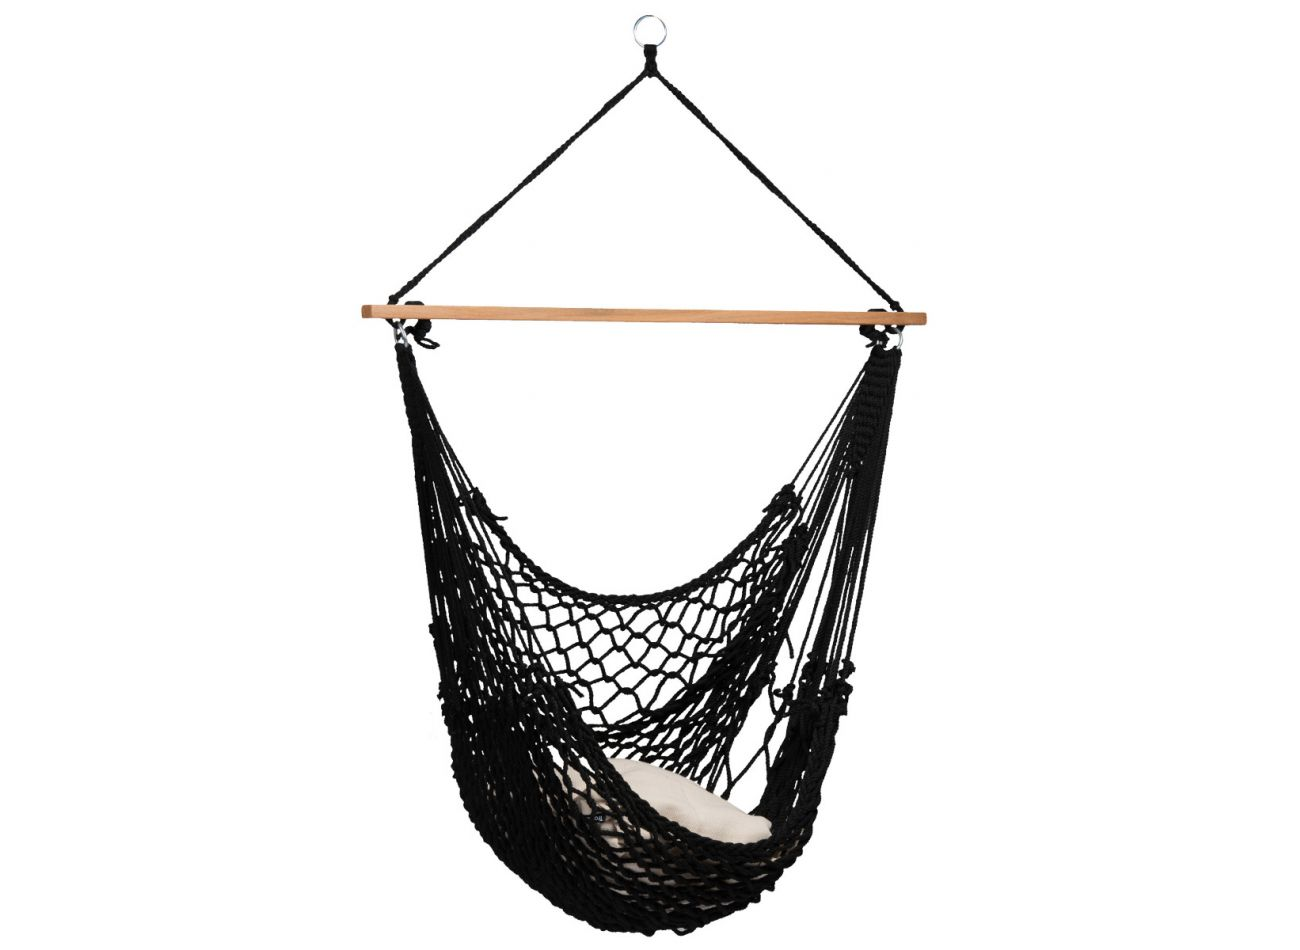 Hangstoel 1 Persoons Rope Black